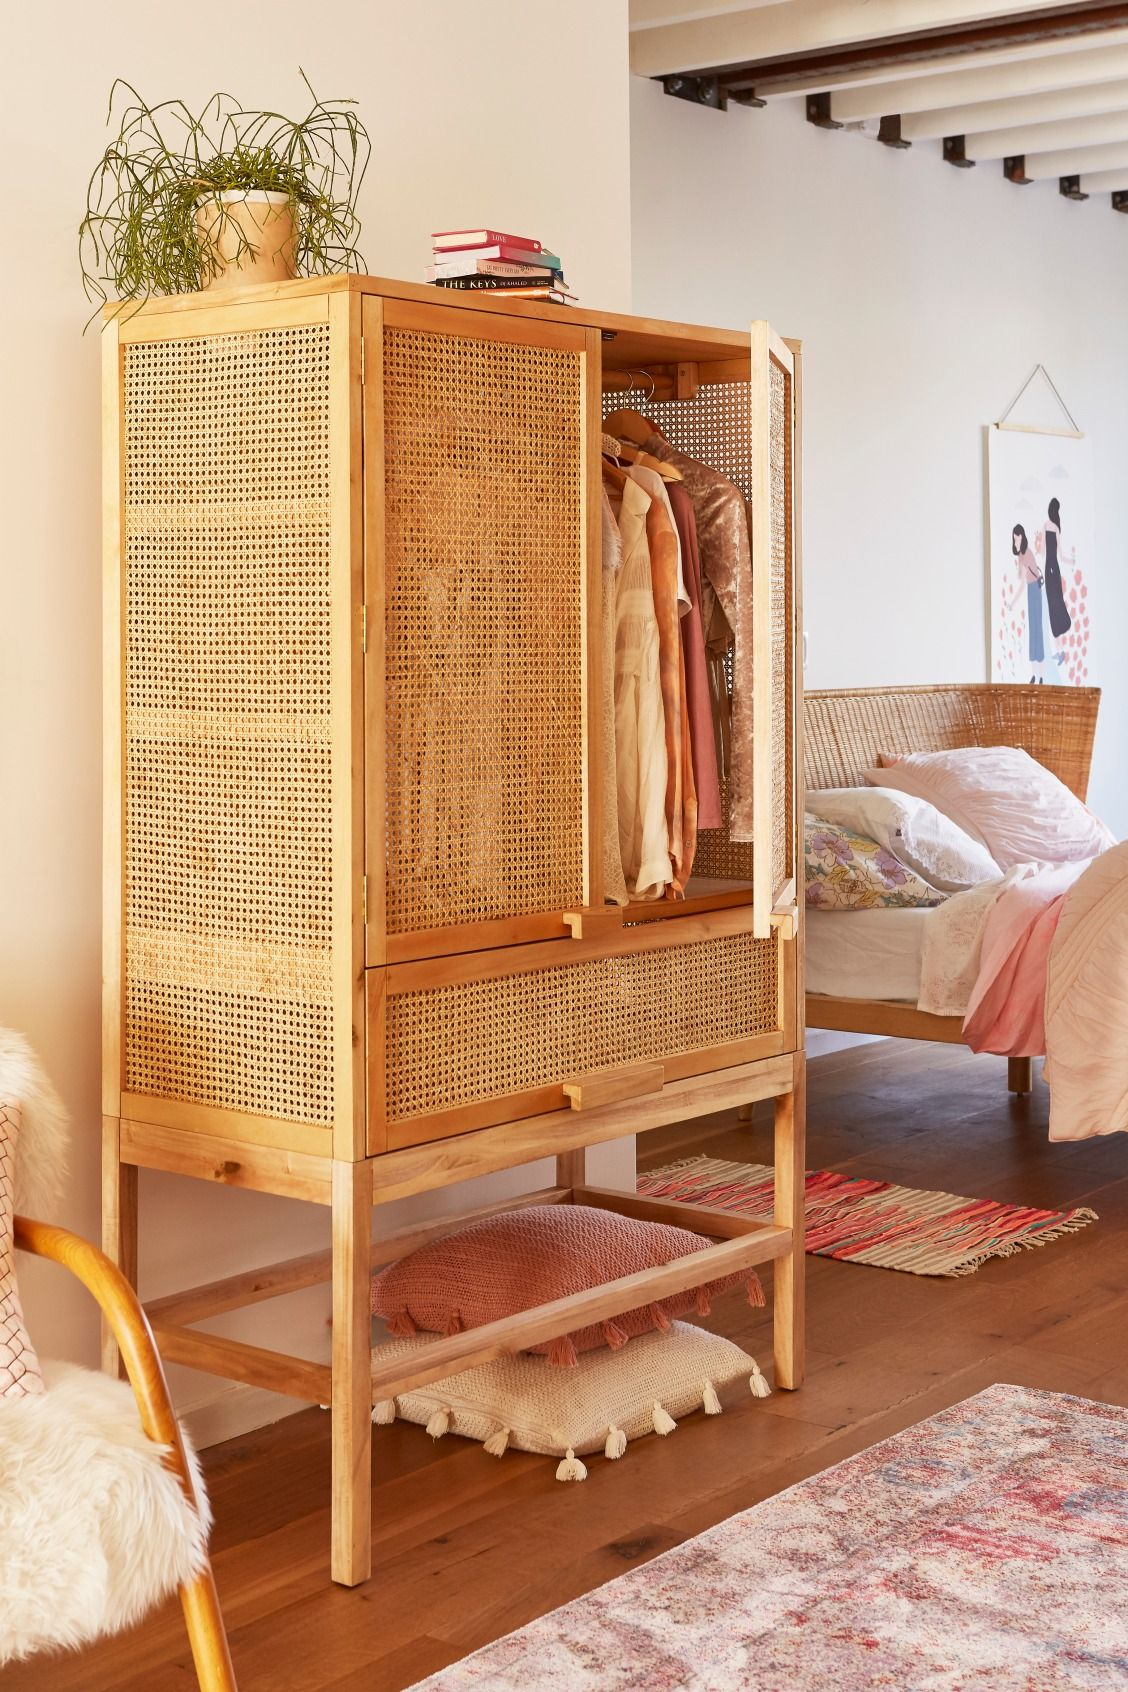 style in you a beachy furniture create this bamboo relaxed with bedroom your pin can cabinet home